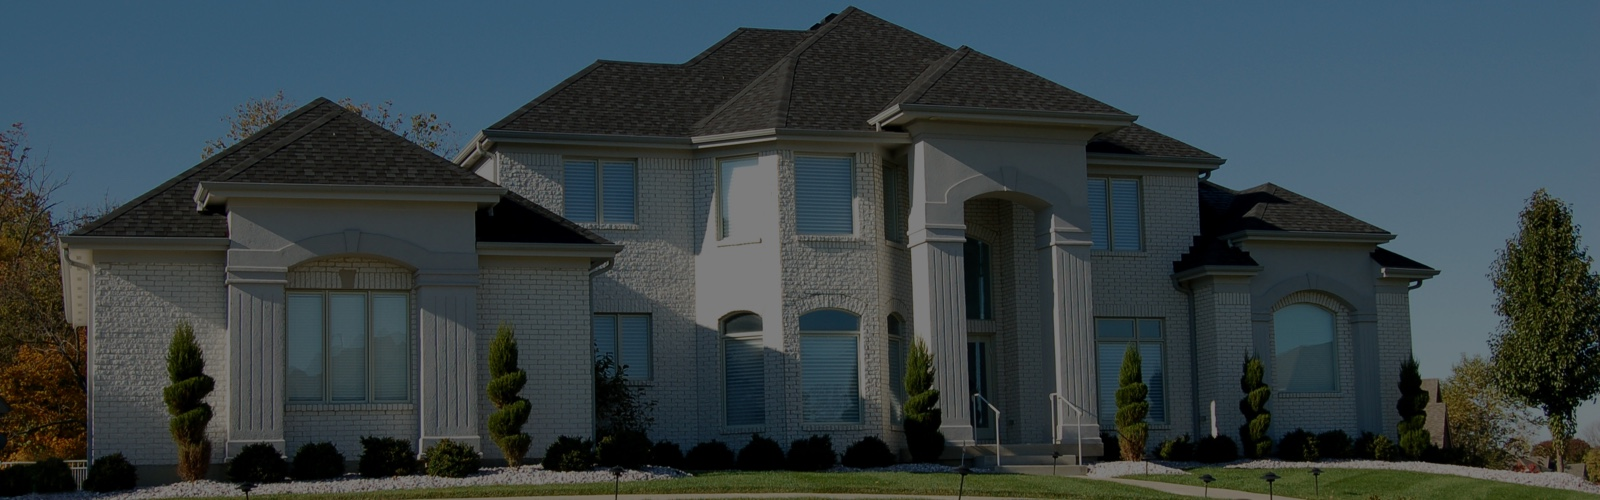 Storm Damage repair in Keller Texas